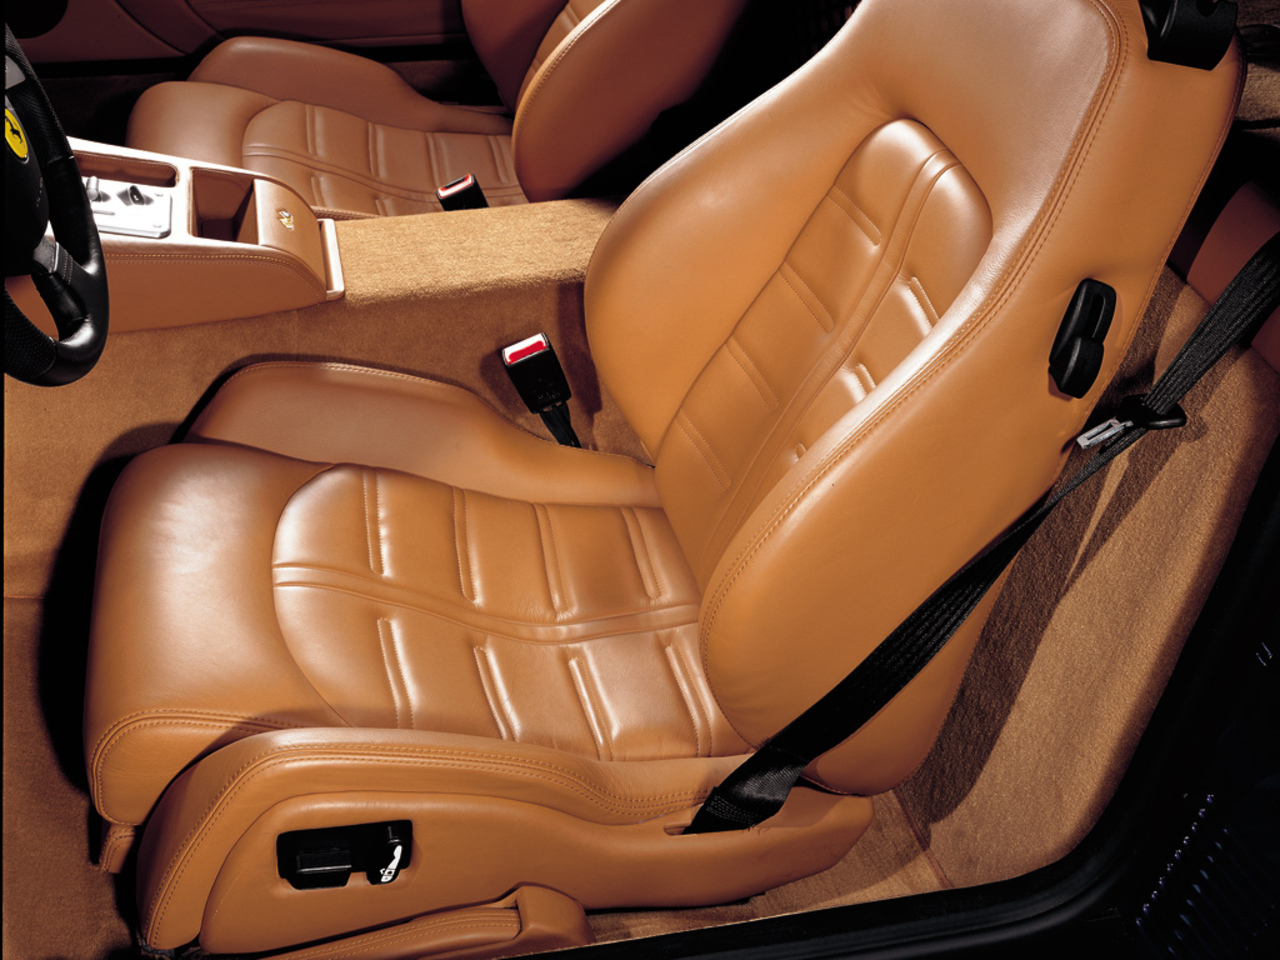 575M Maranello, leather seat